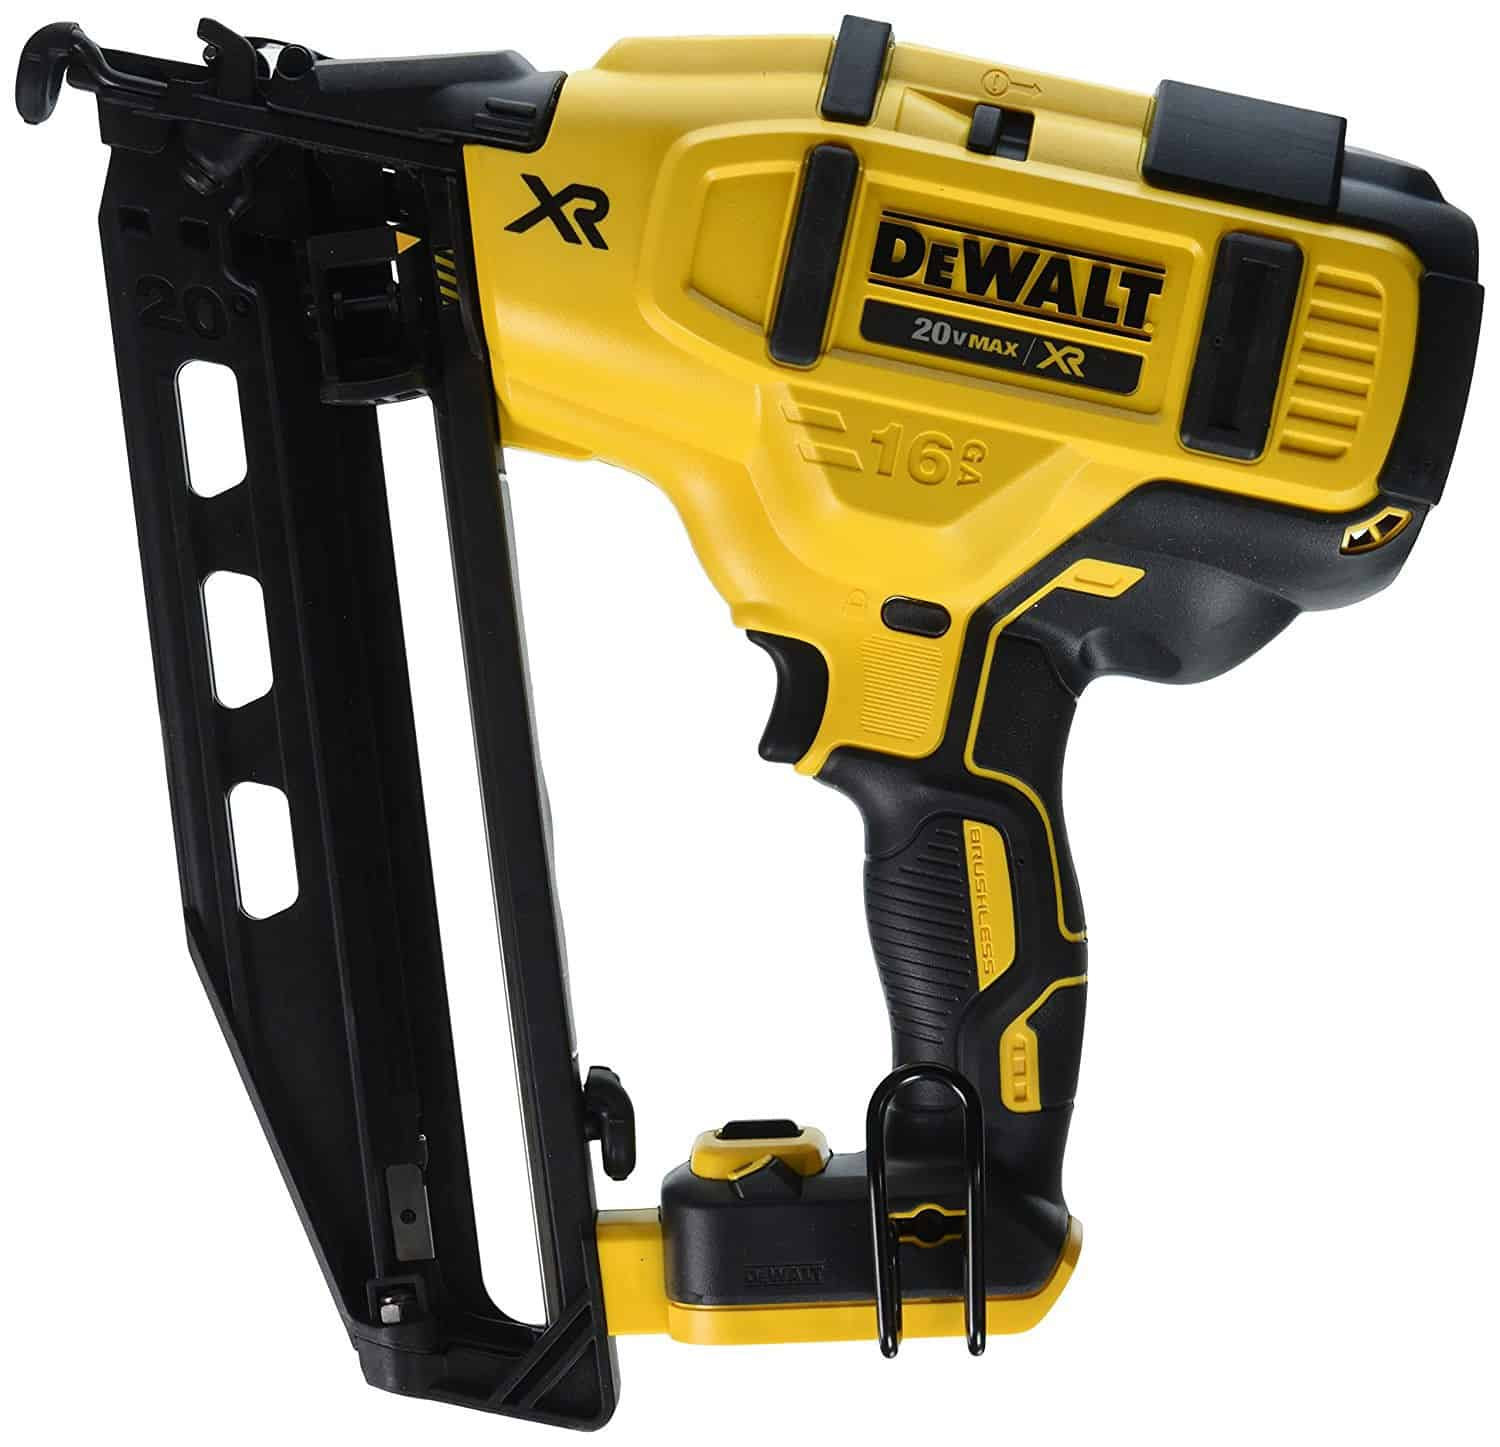 Nail guns with integrated LED lights and bump operating mode.